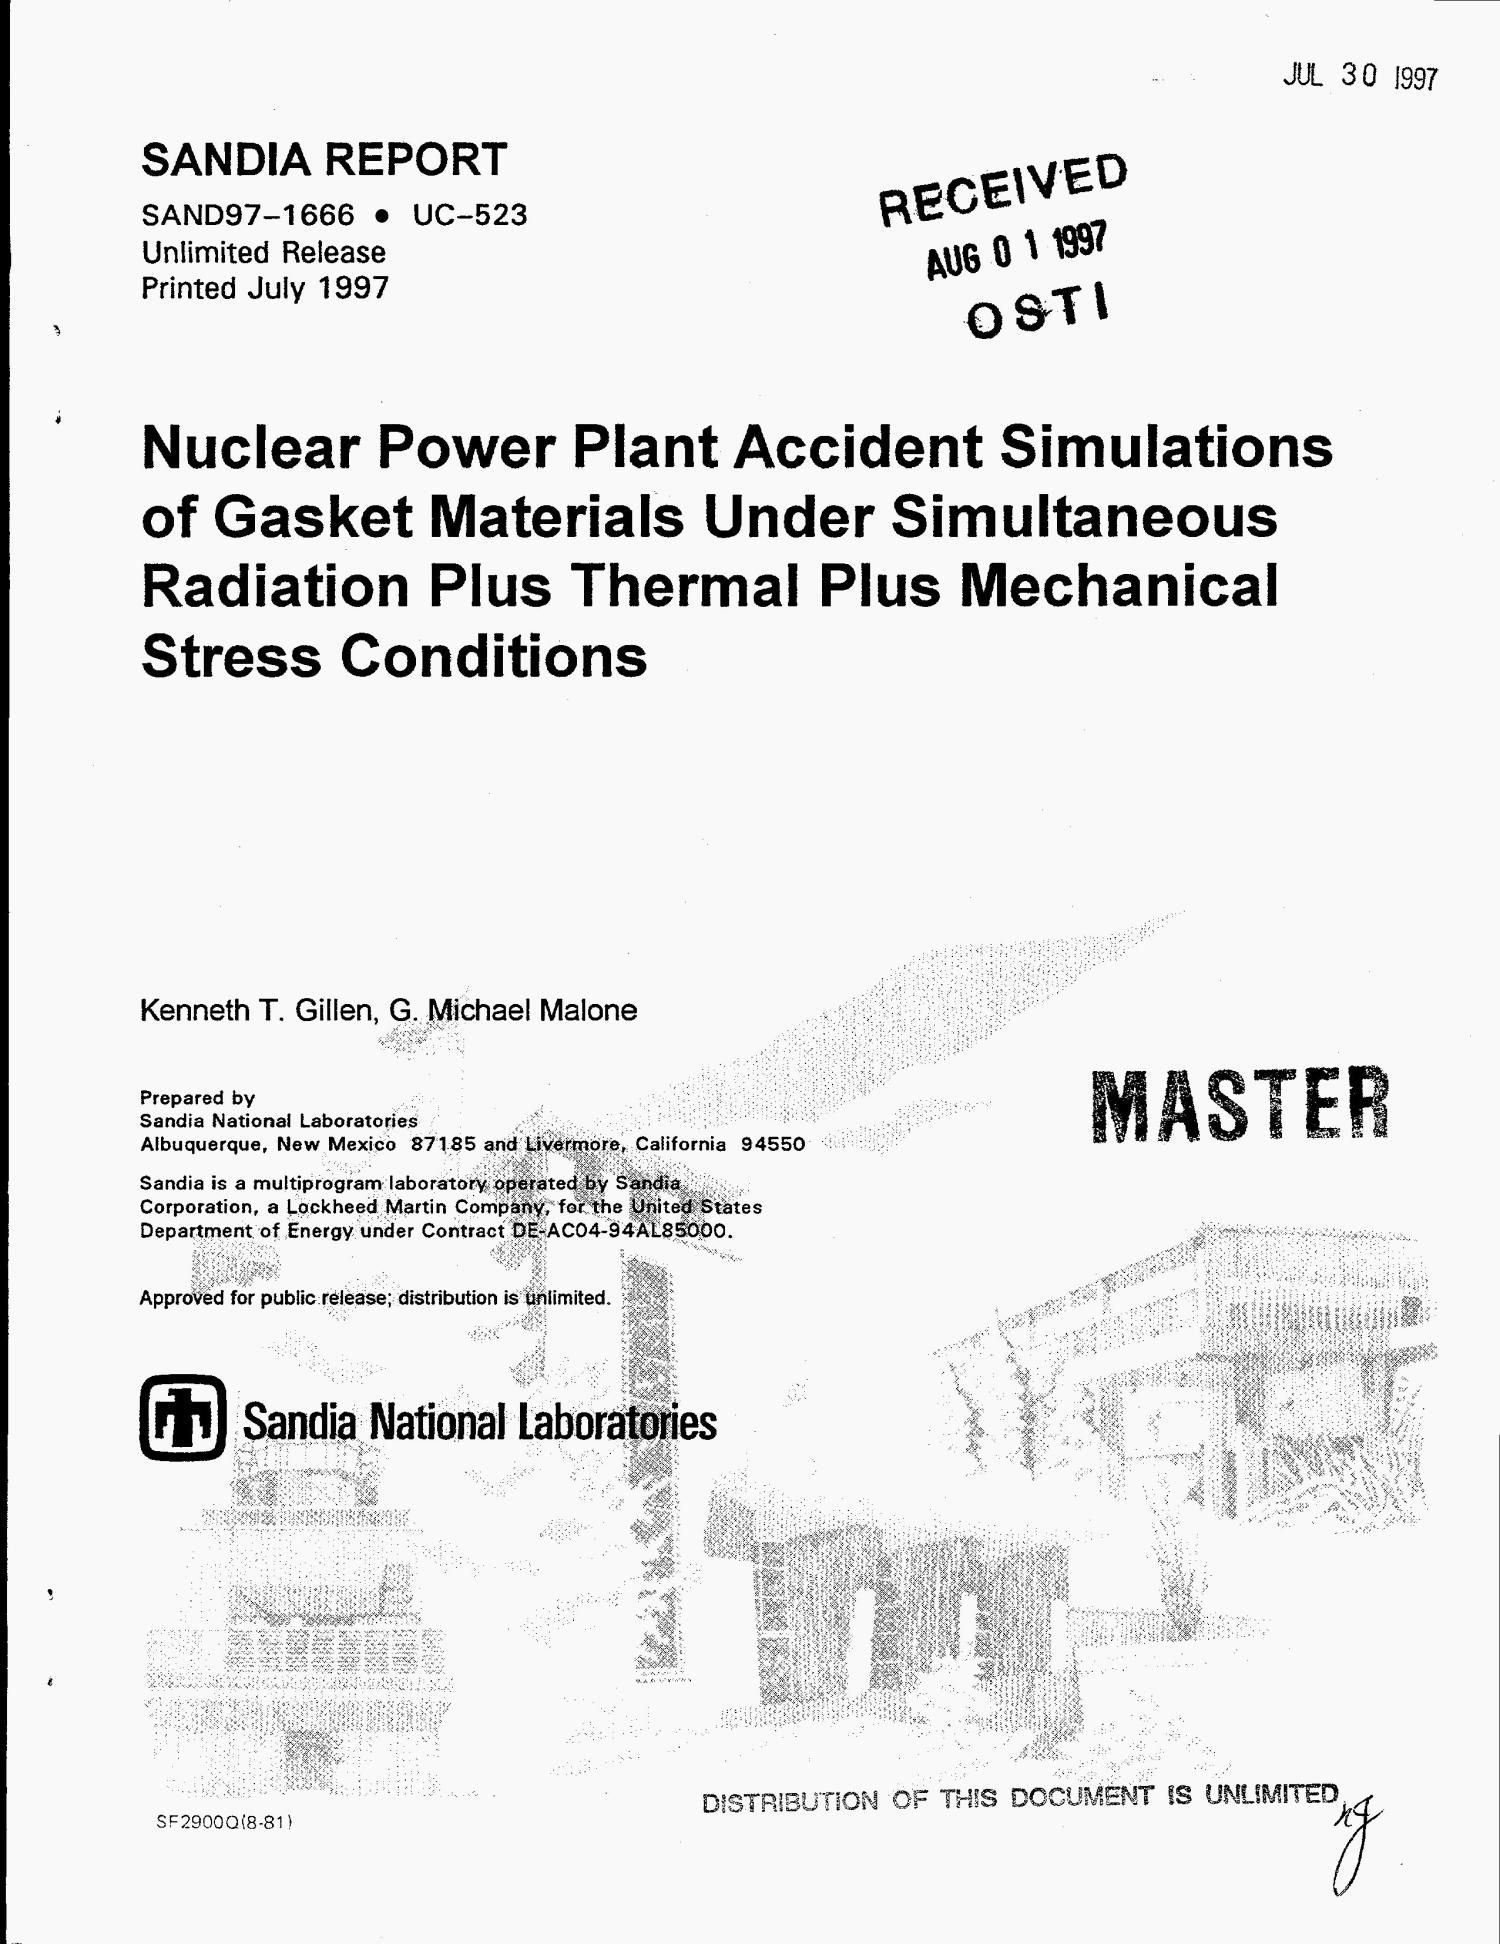 Nuclear power plant accident simulations of gasket materials under simultaneous radiation plus thermal plus mechanical stress conditions                                                                                                      [Sequence #]: 1 of 46